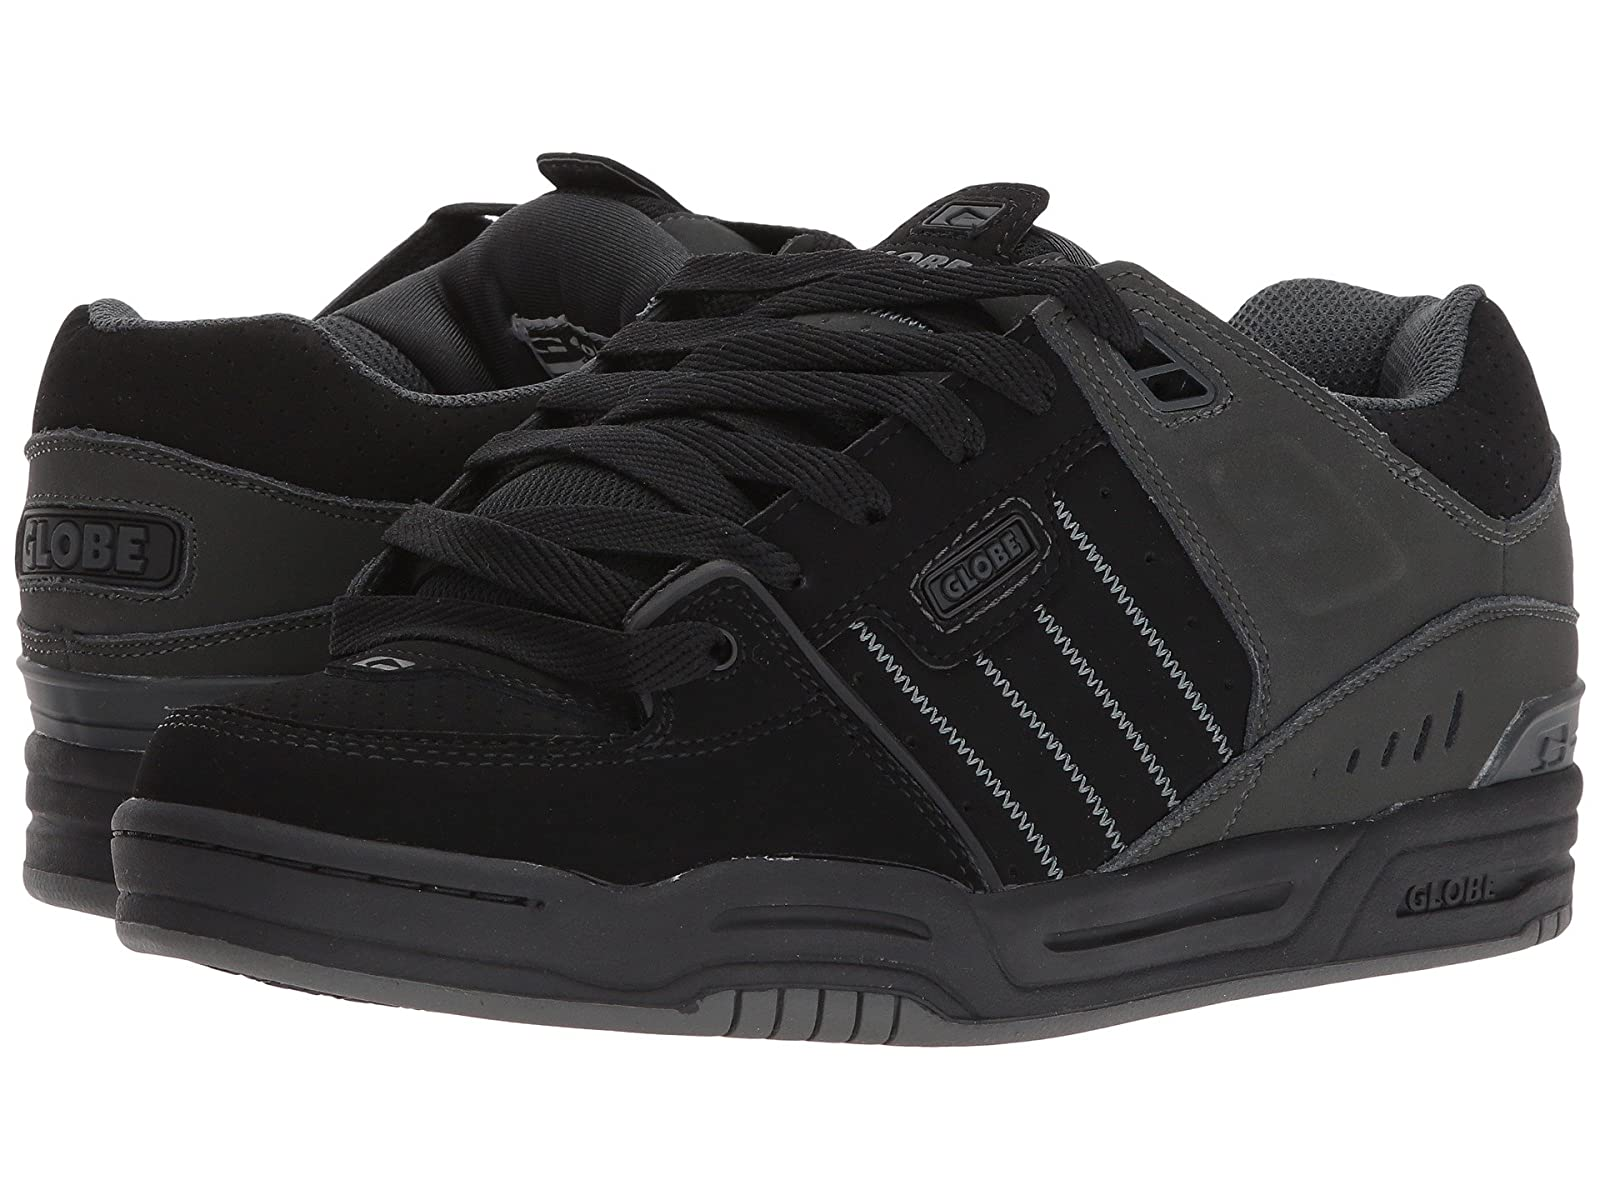 Globe FusionAtmospheric grades have affordable shoes